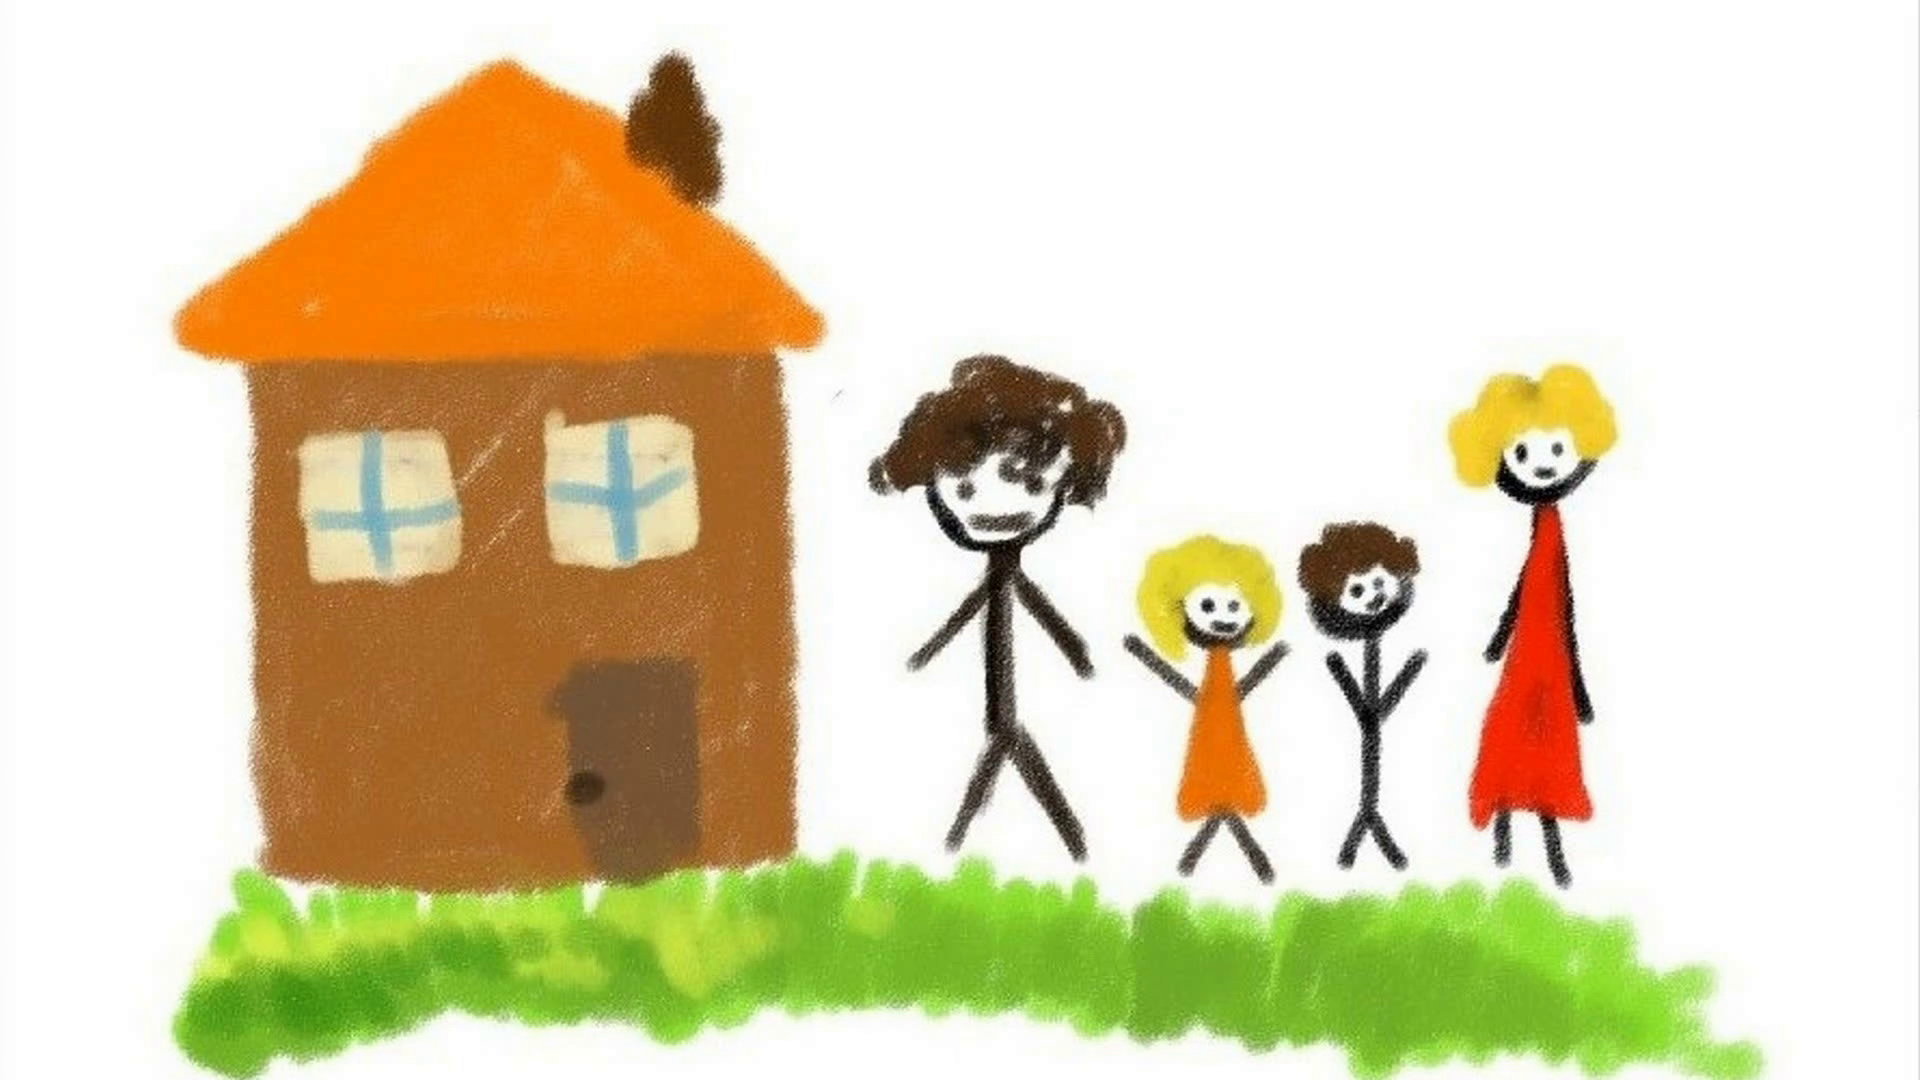 1920x1080 Digital Drawing Of A Family Shooting Of Timelapse Motion